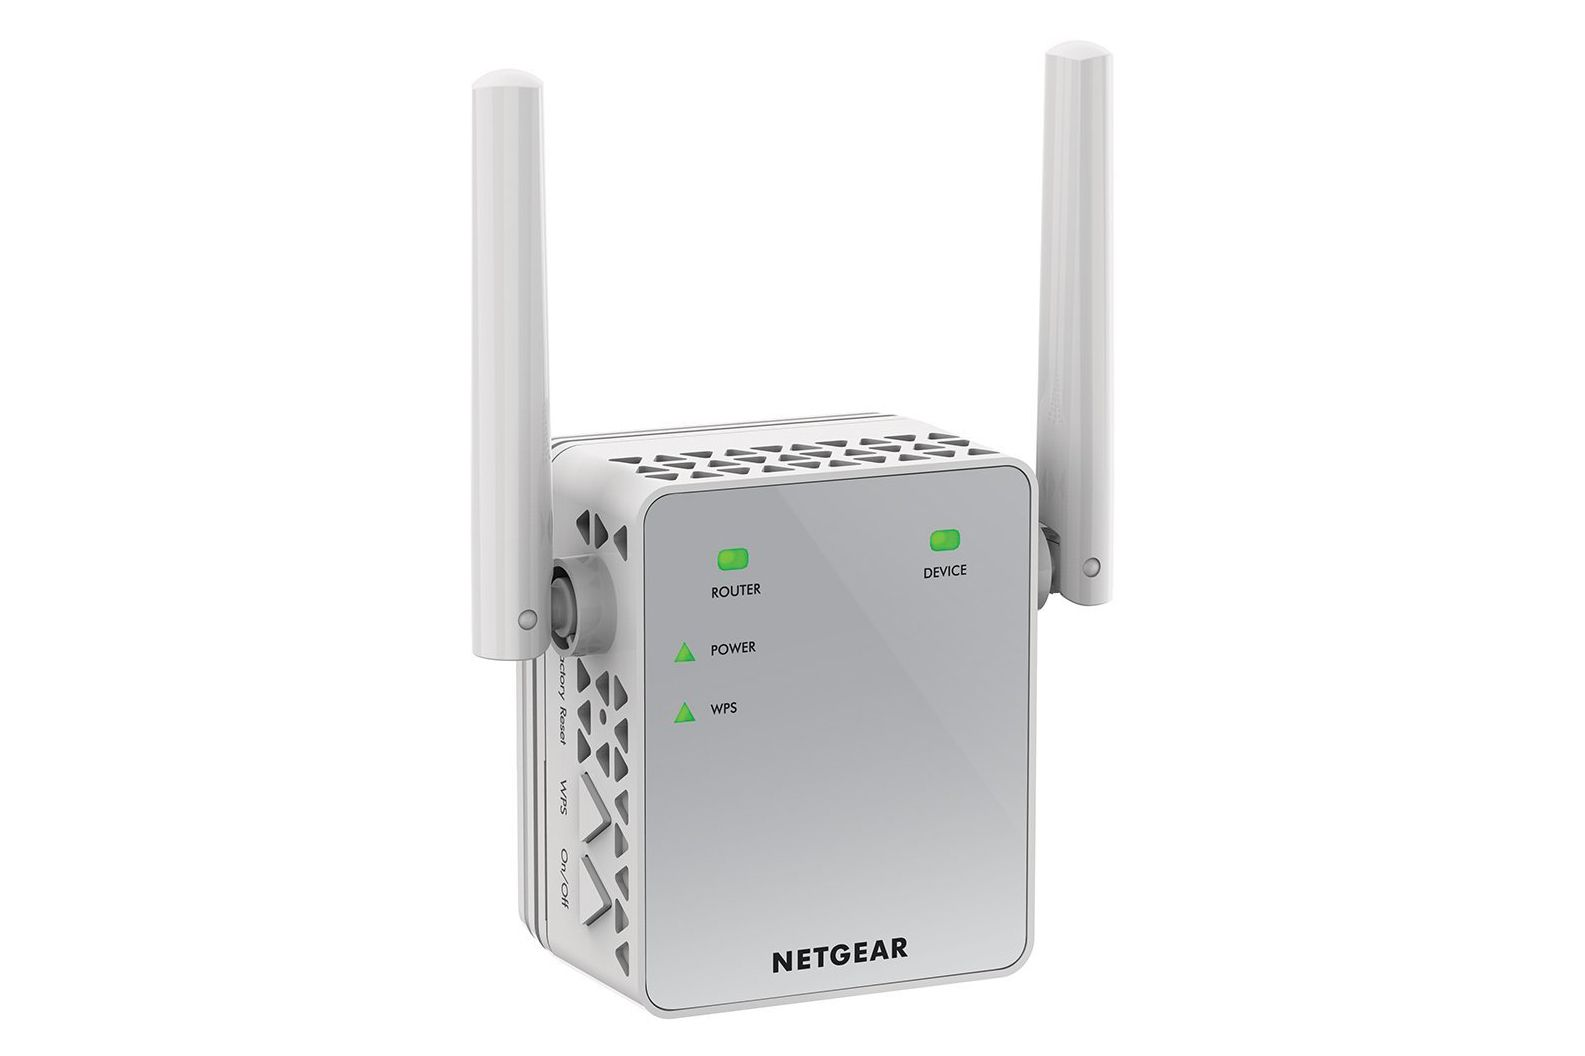 Use a Wi-Fi Extender or Repeater